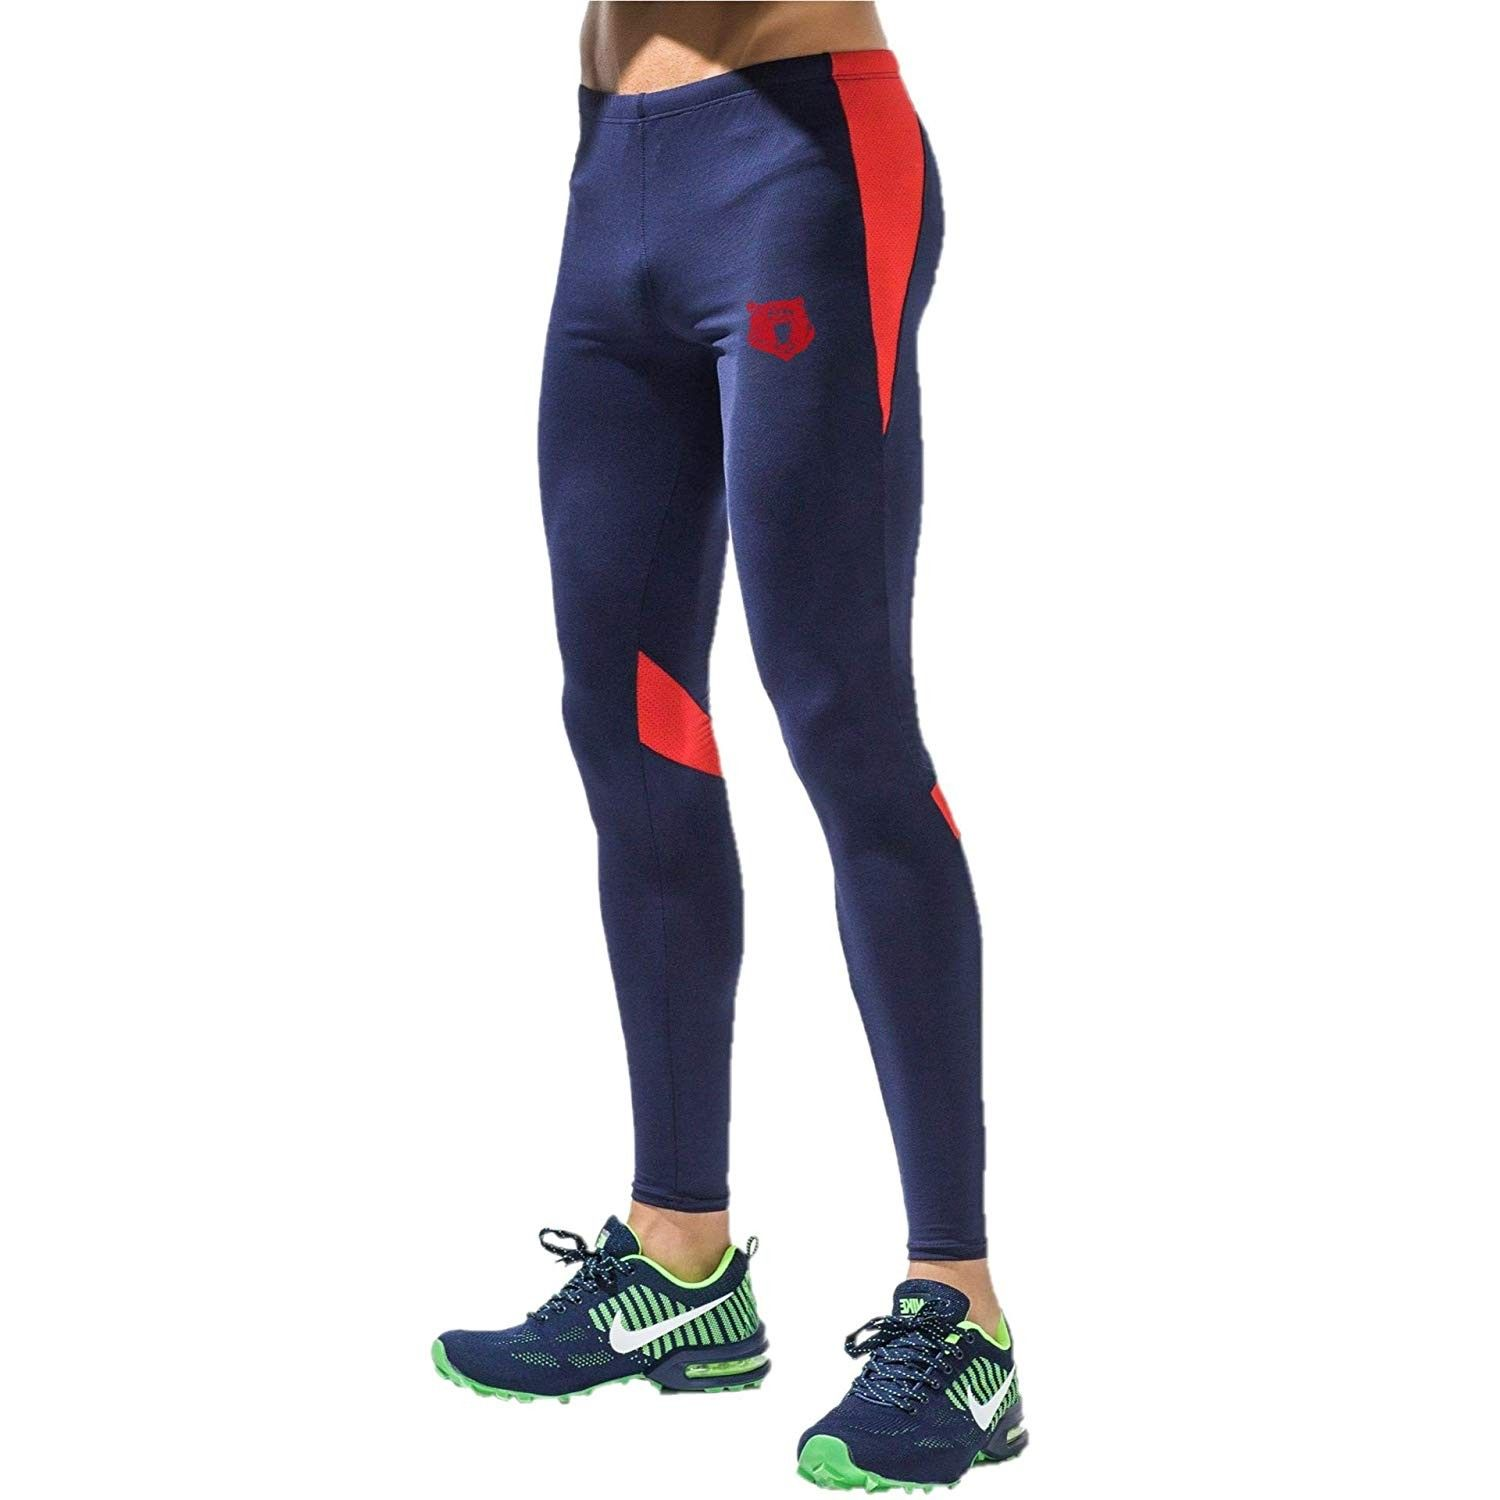 Mens Compression Dry Cool Sports Pants Baselayer Running Leggings Yoga Tight fit